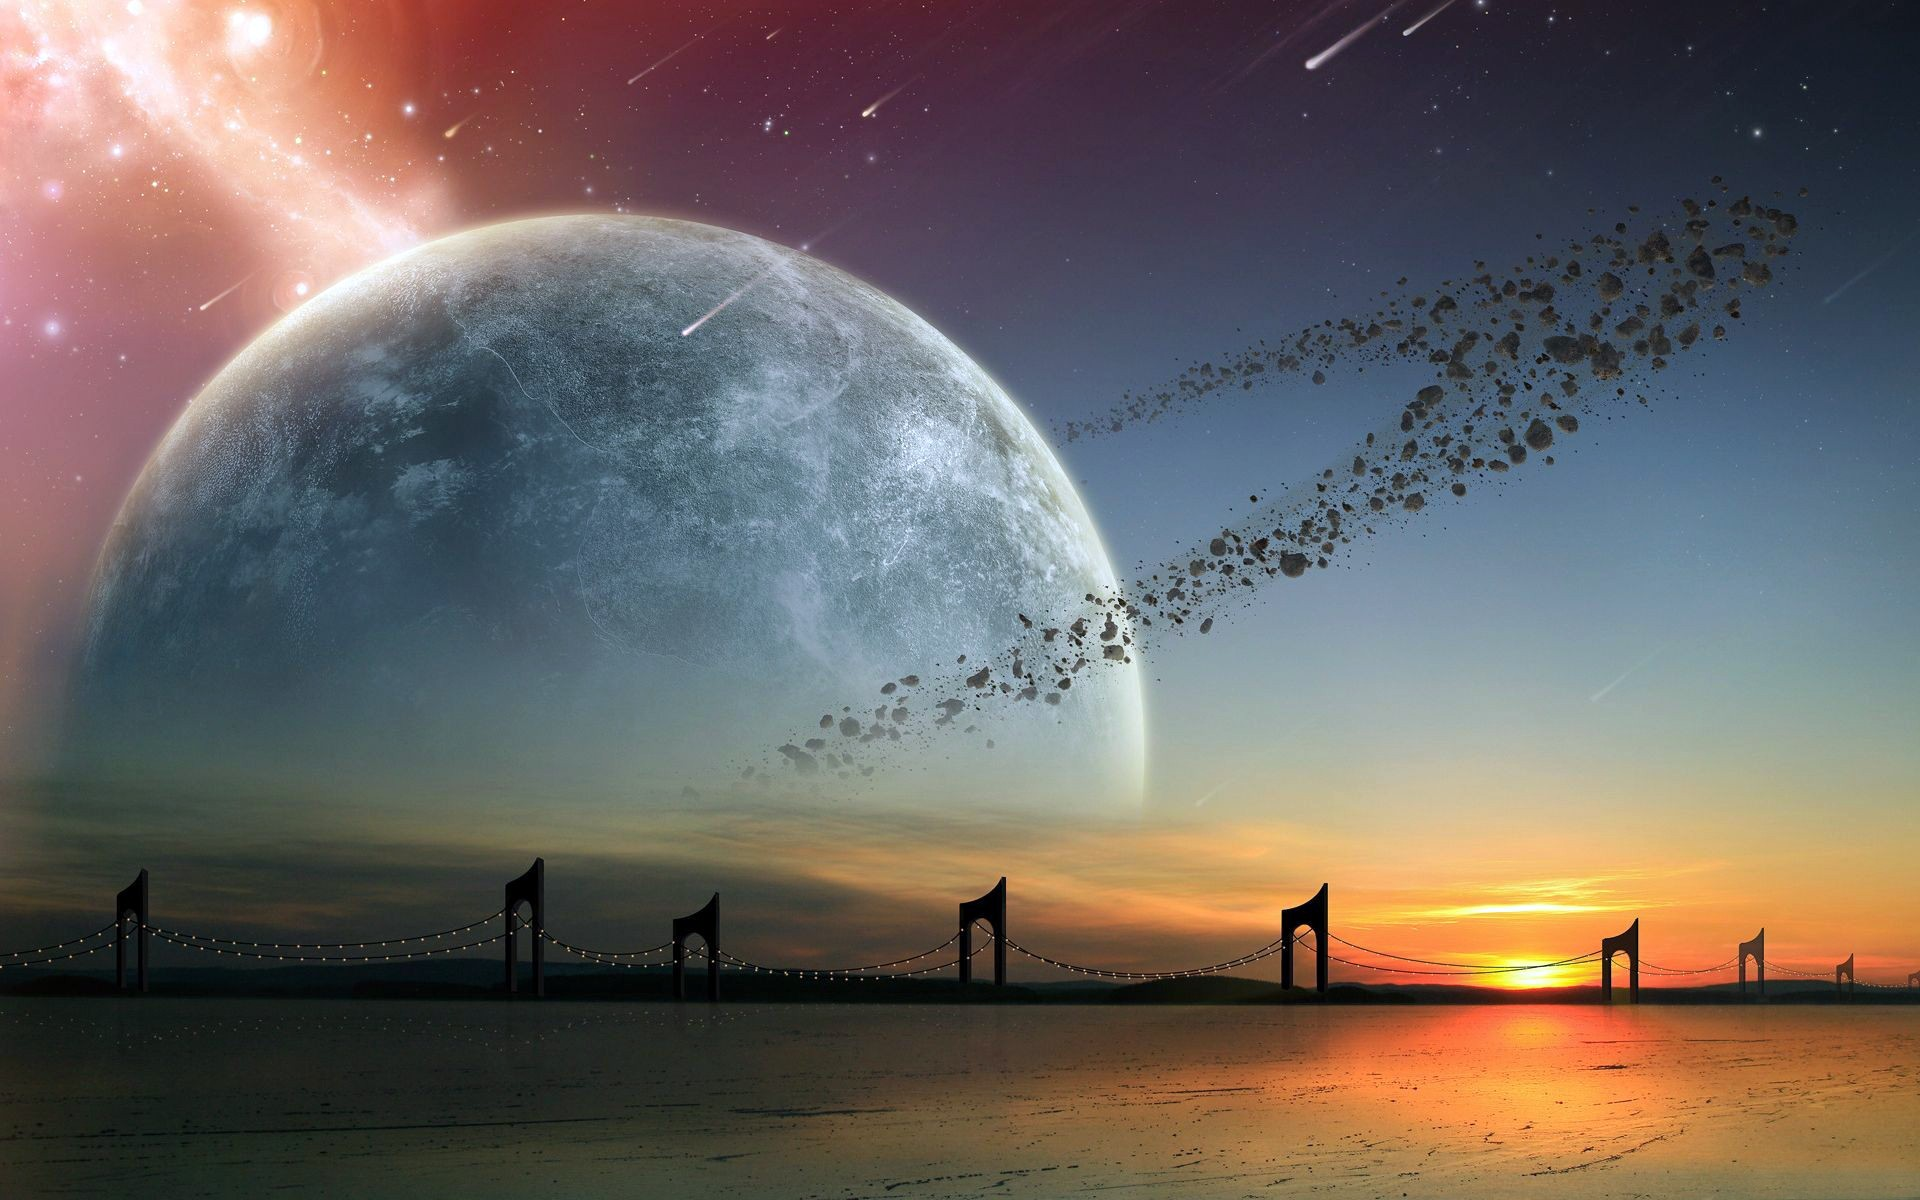 3d Asteroid Wallpaper Planet Asteroids Ocean Bridge Wallpapers Planet